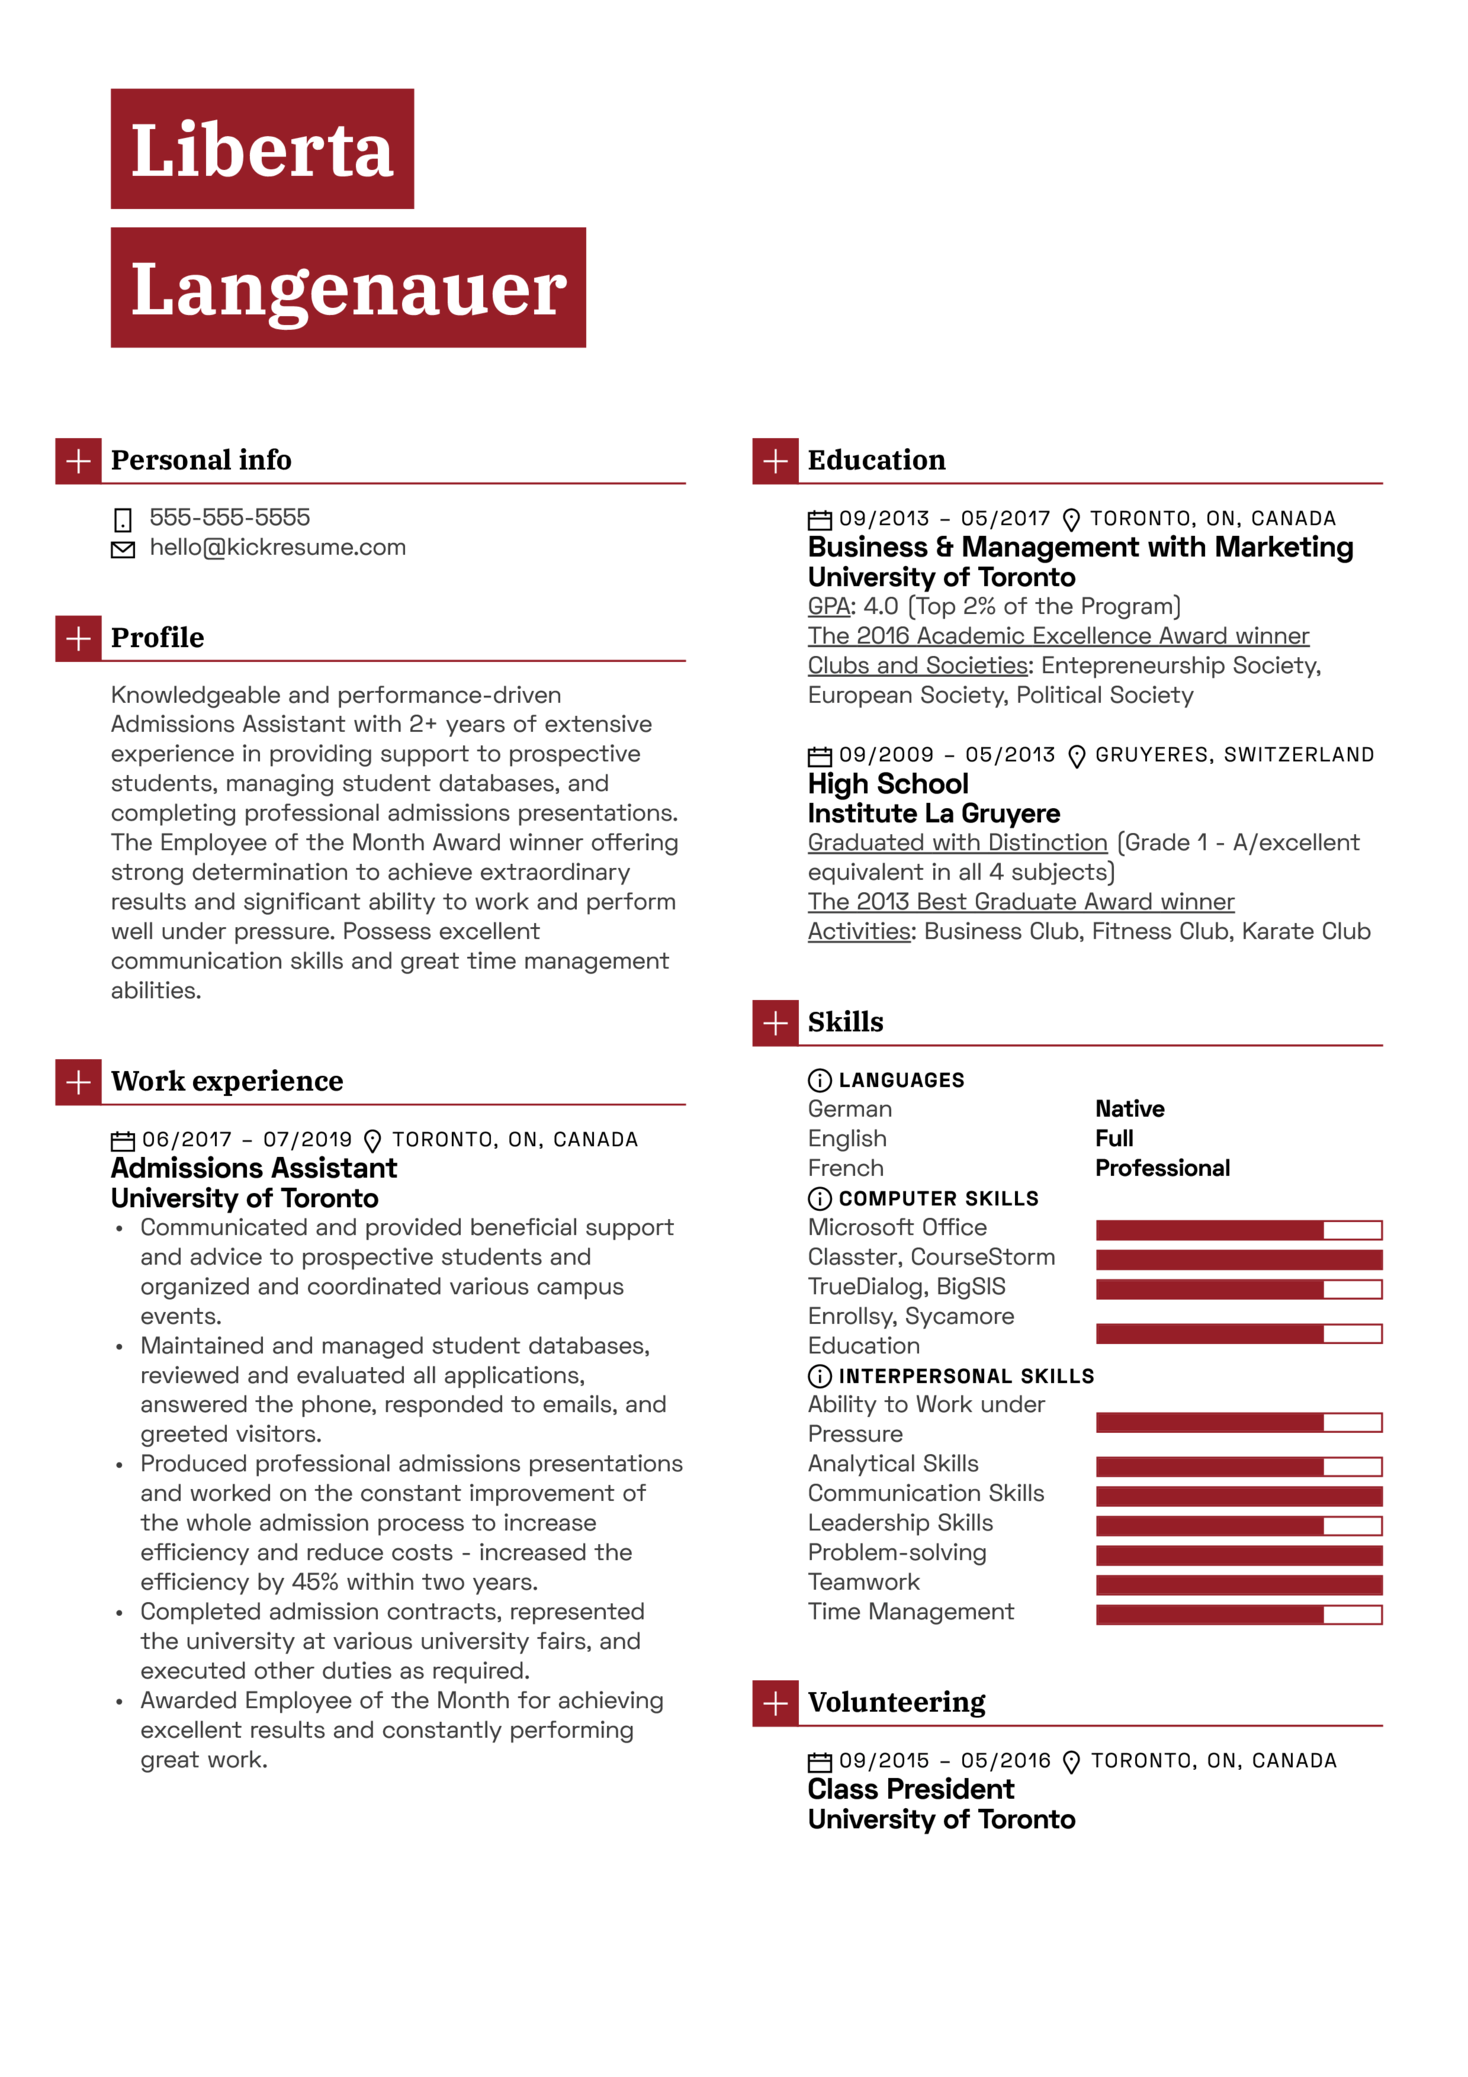 Admissions Assistant Resume Example (Part 1)